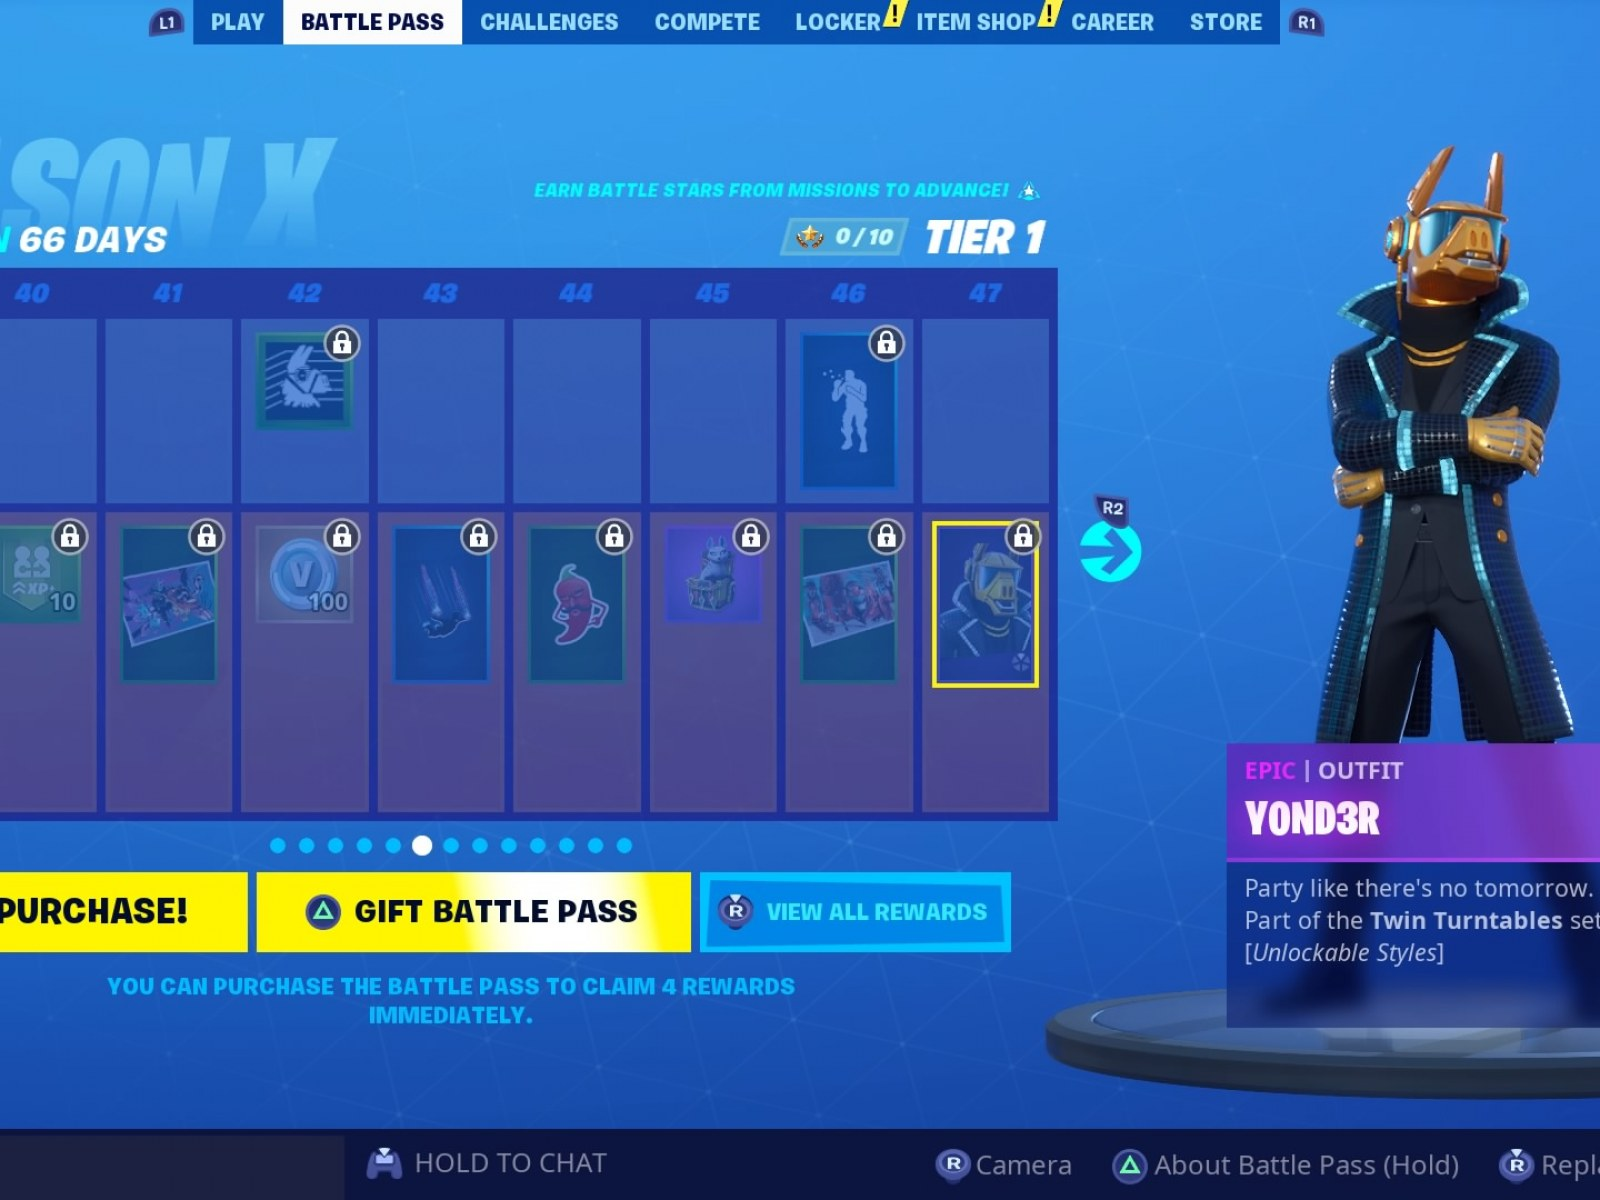 Fortnite Dance Behind Dj Booth At Dance Club With Yond3r Outfit Location